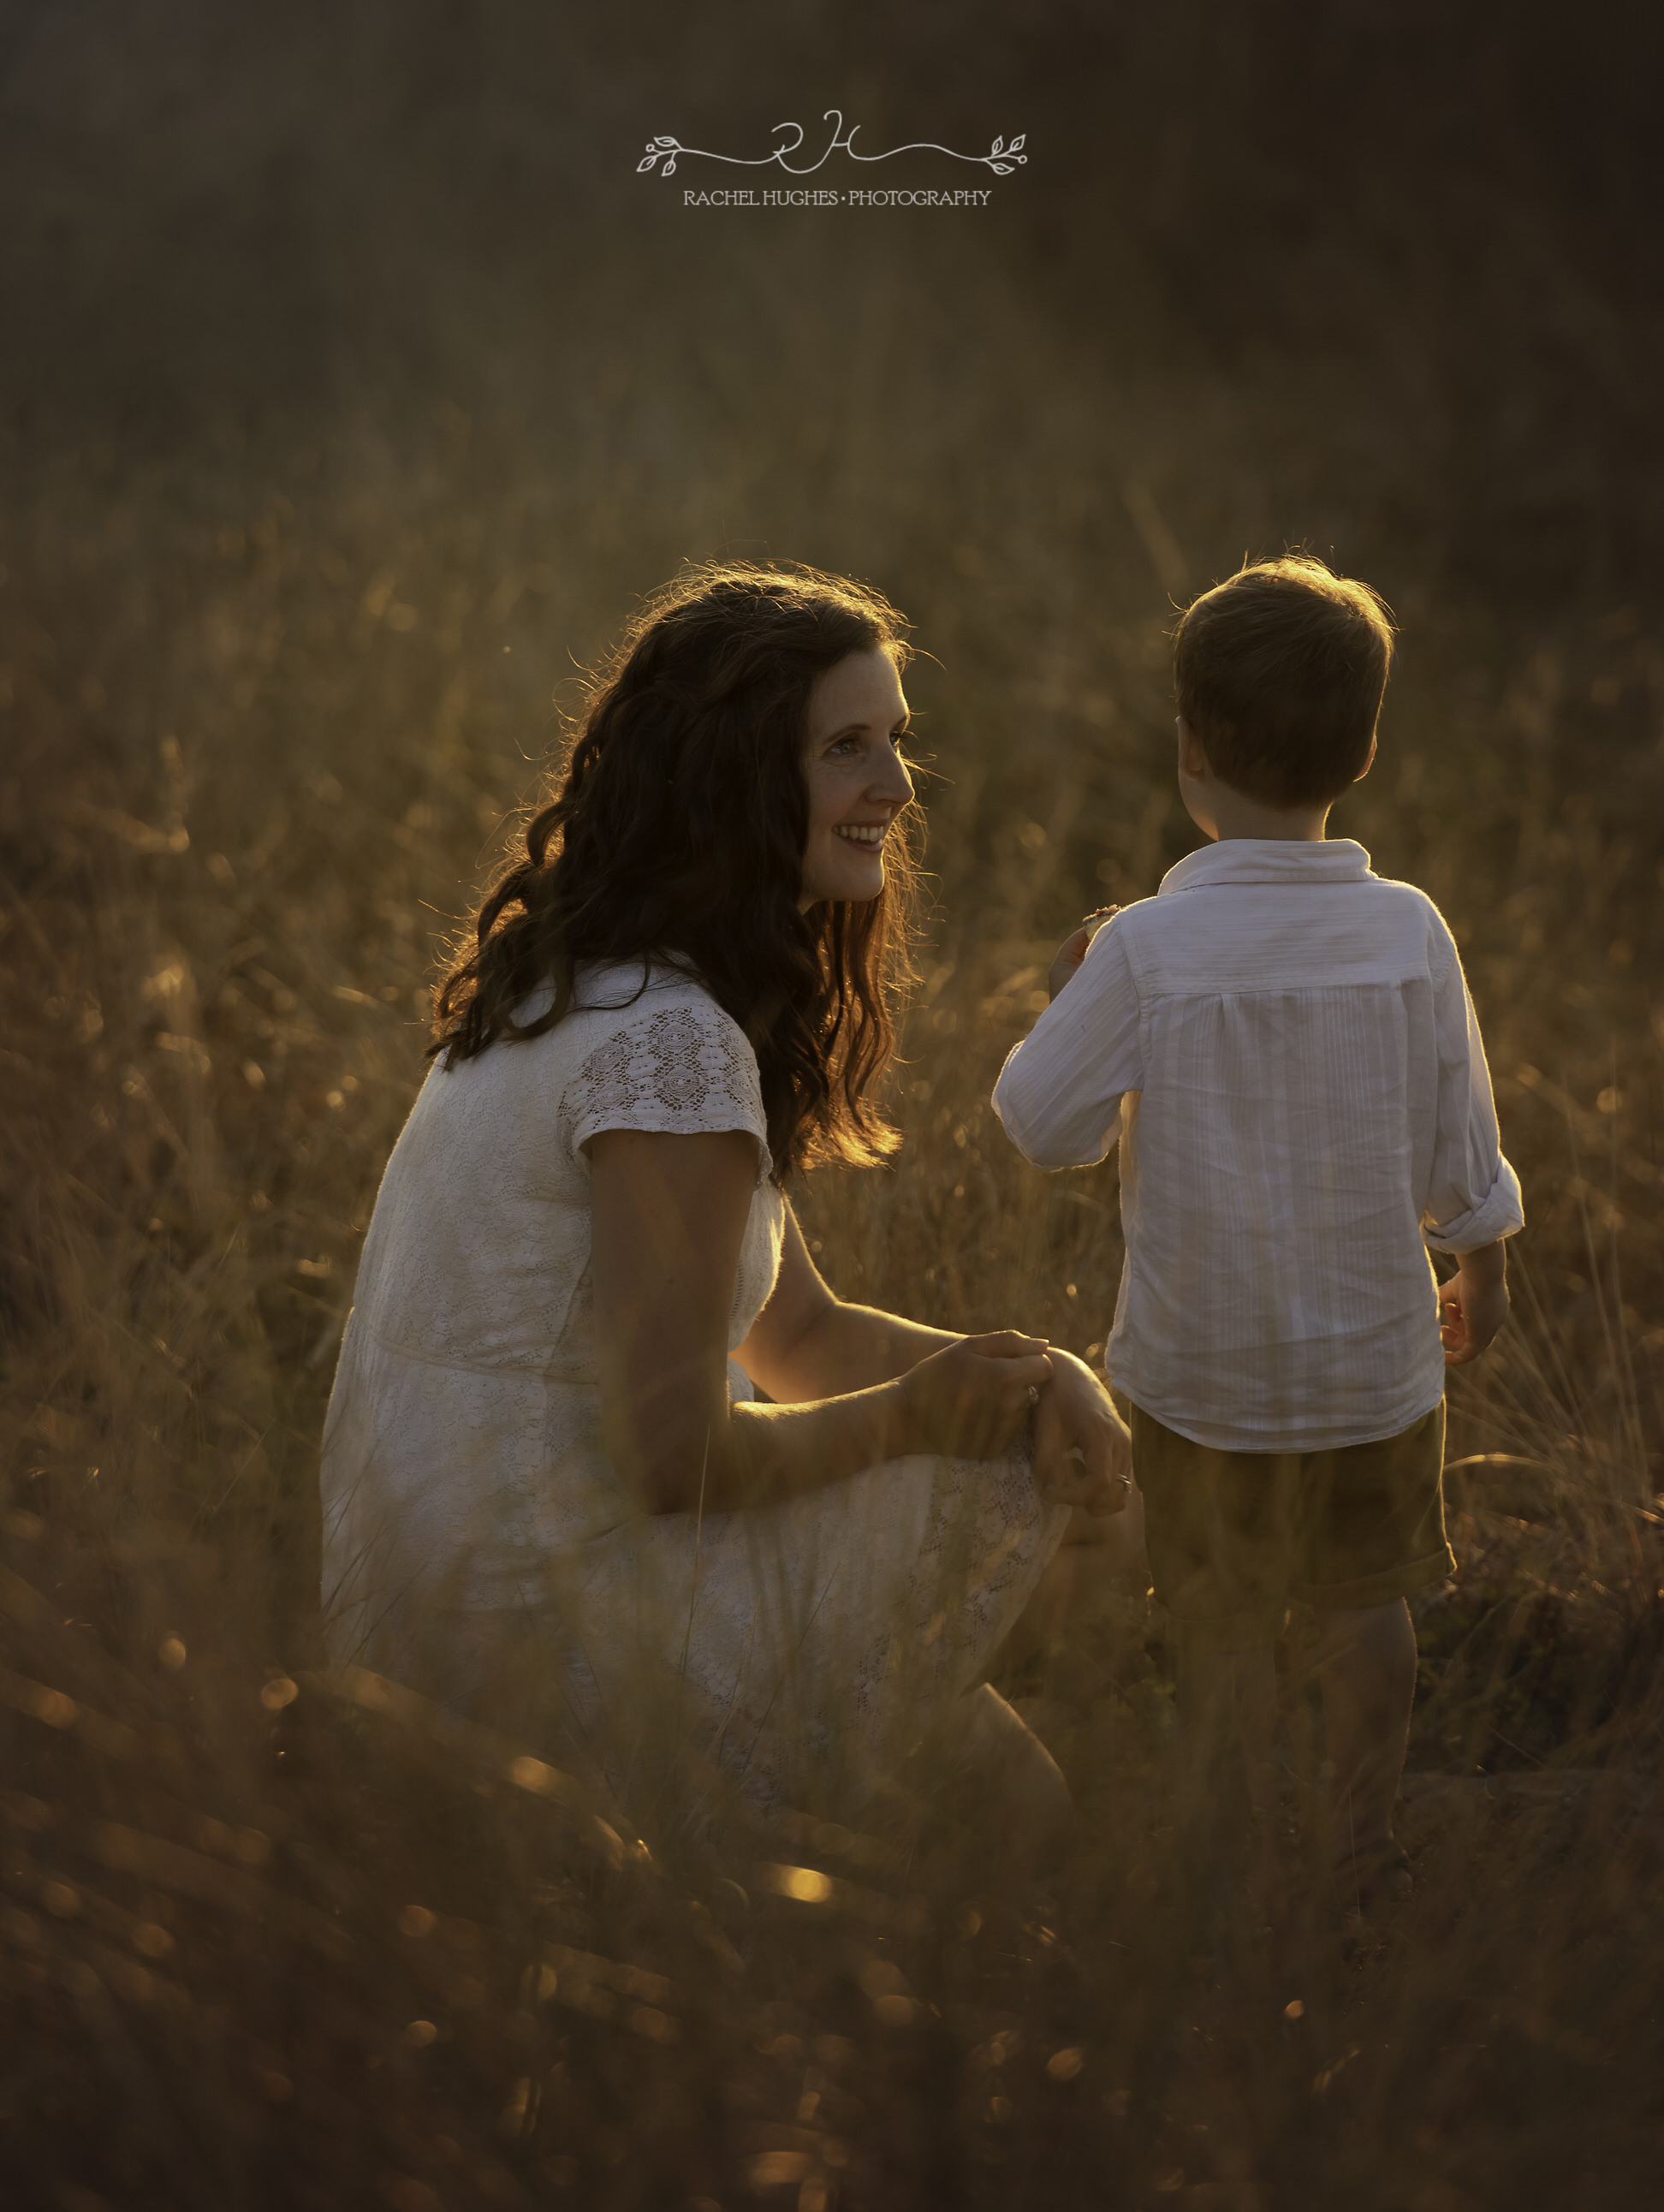 Jersey photographer - mother and sun in sunset dunes